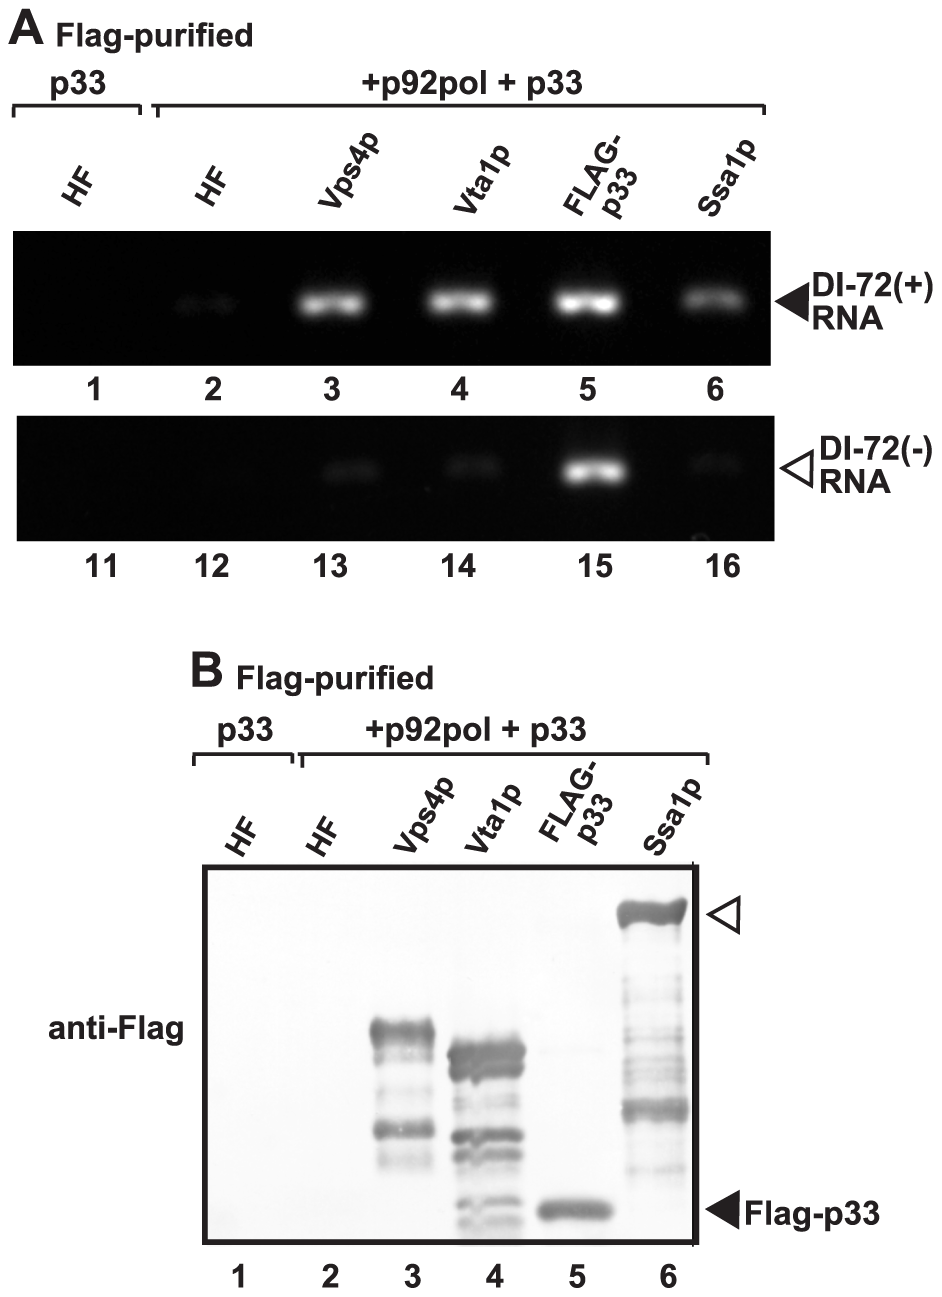 Co-purification of the viral (+)RNA with Vps4p.